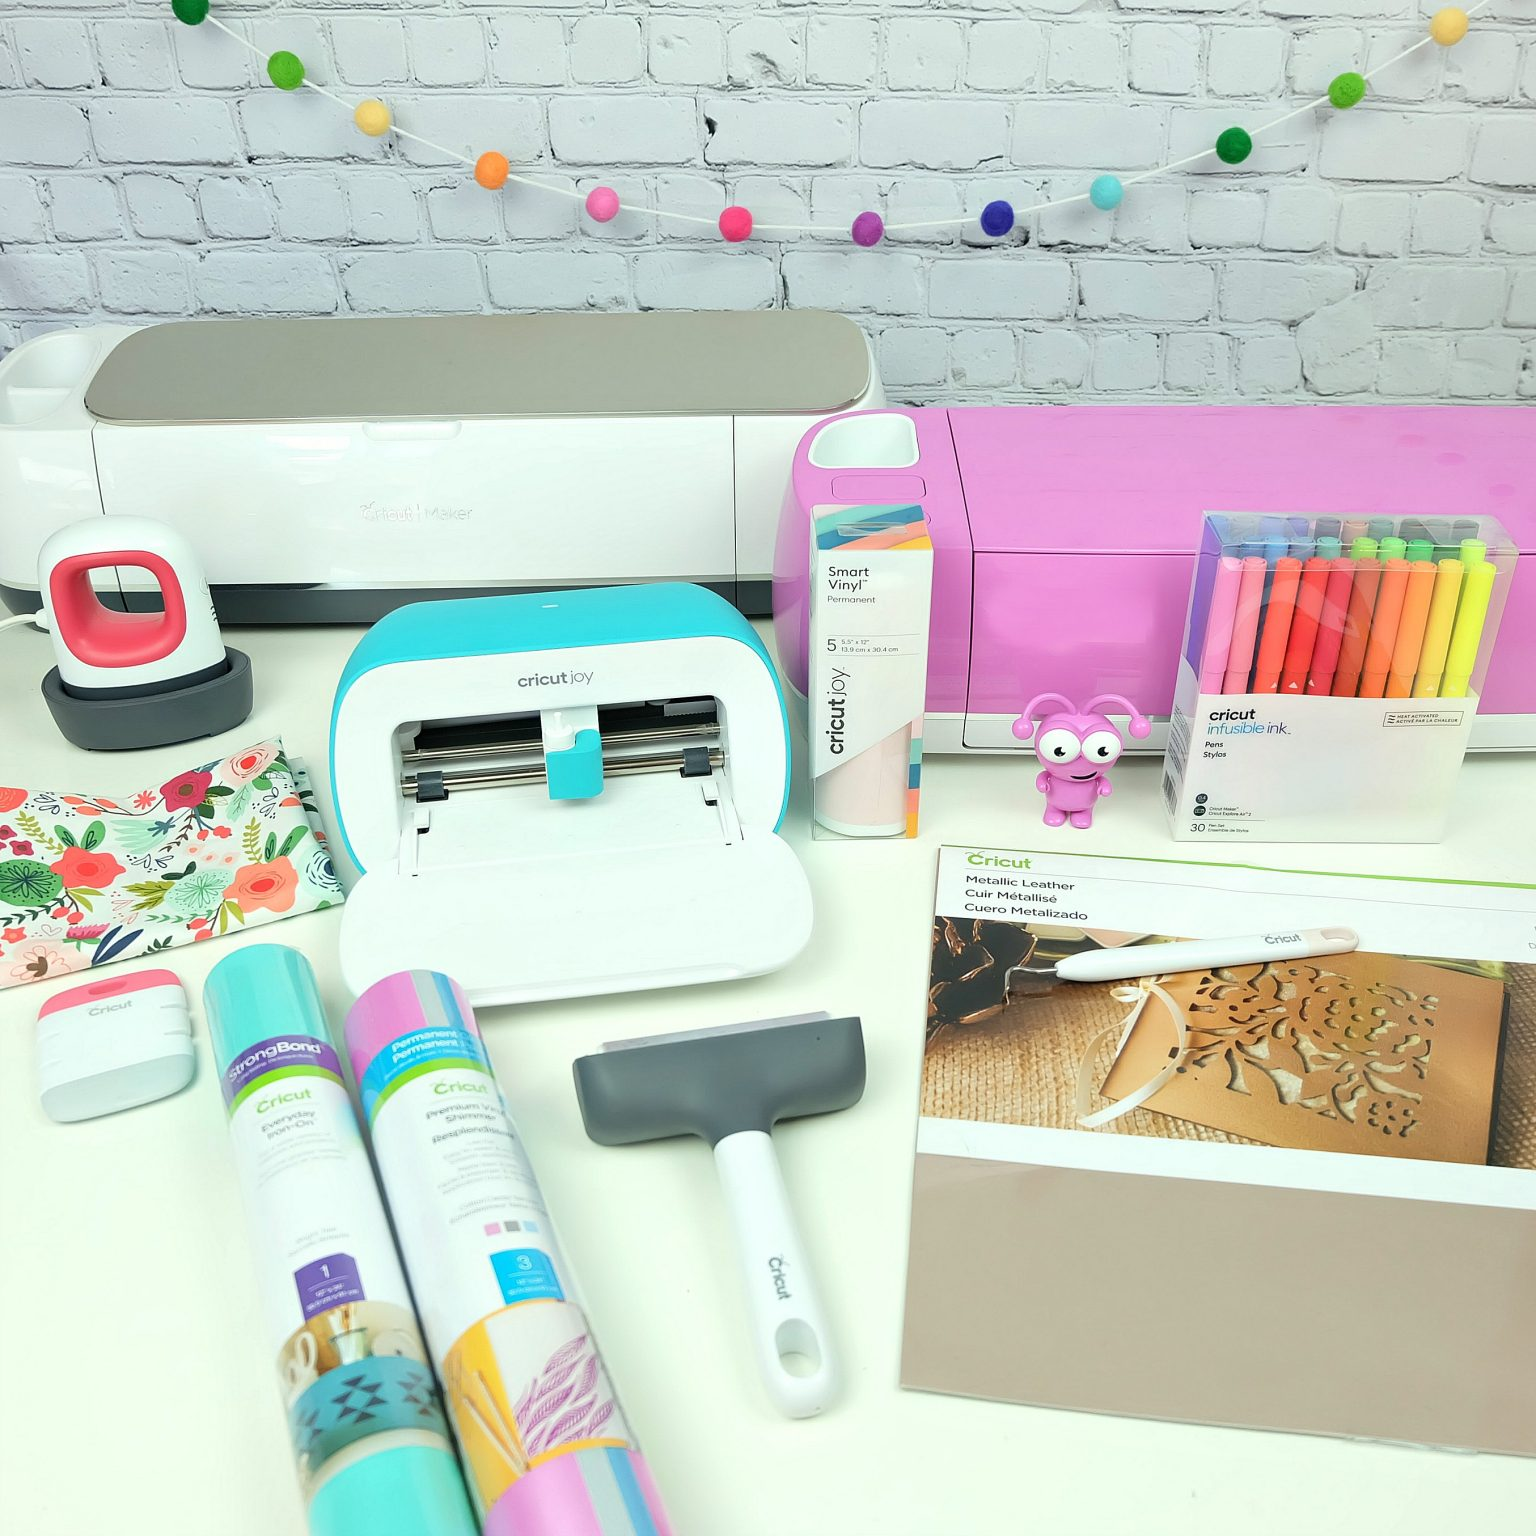 Craft table set up with Cricut Maker, Cricut Explore Air 2 Cricut Joy and Cricut craft supplies.